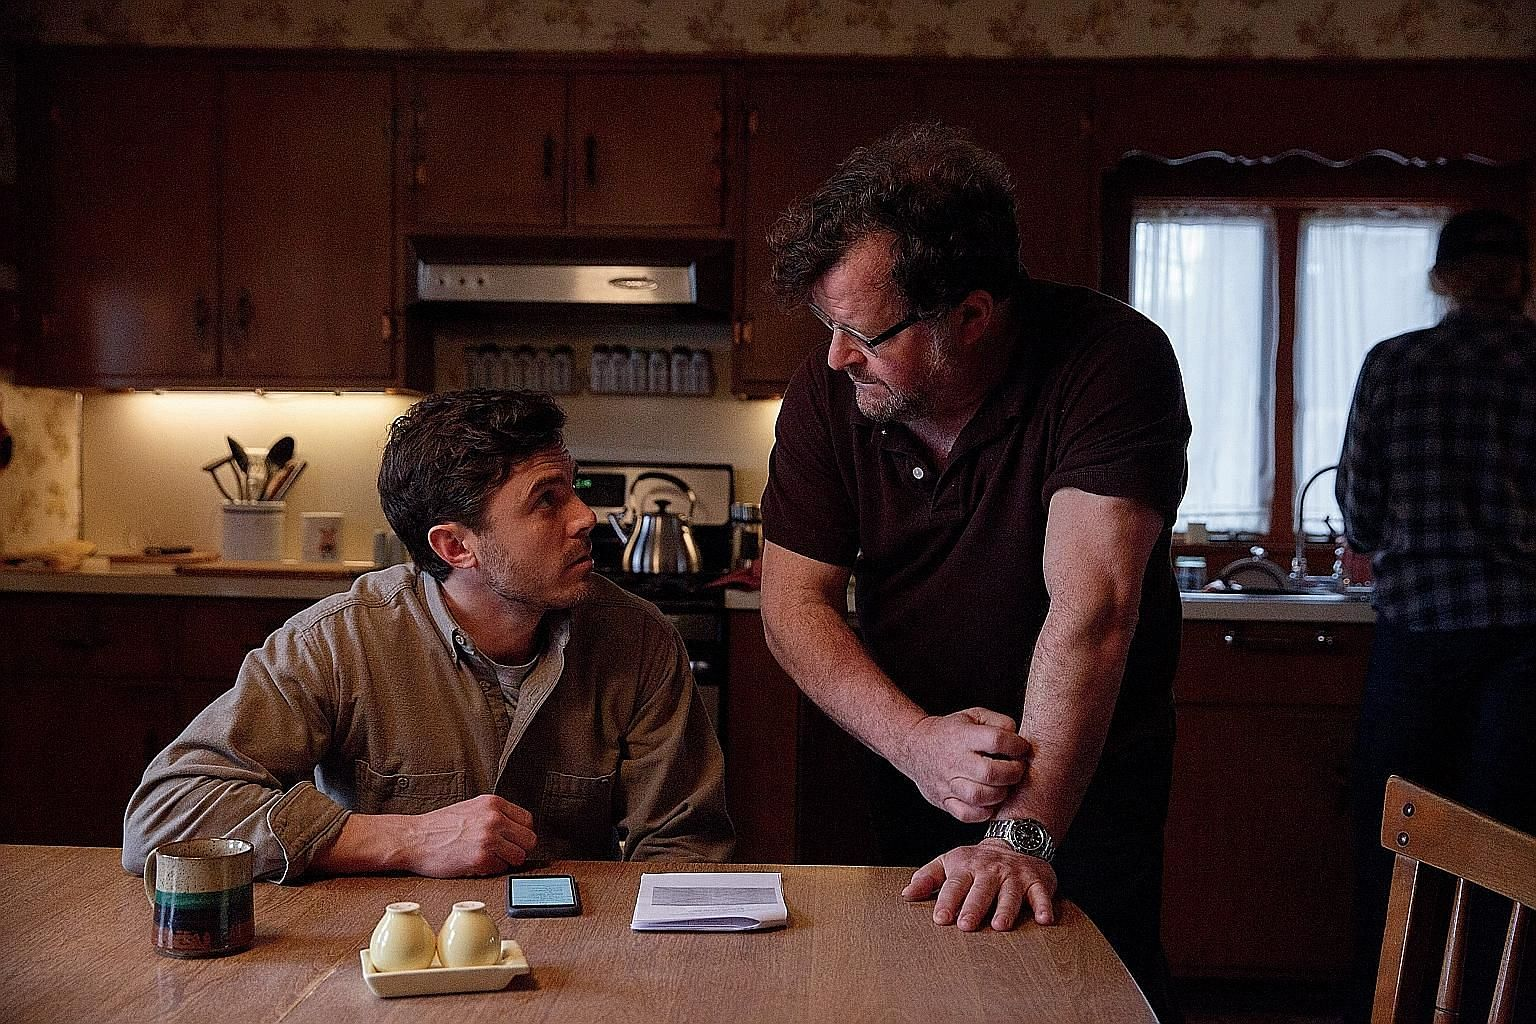 Actor Casey Affleck and director Kenneth Lonergan on the set of Manchester By The Sea. The movie, picked up by Amazon Studios for distribution, is the first film produced by a digital streaming service to be nominated for the Best Picture Academy Award.